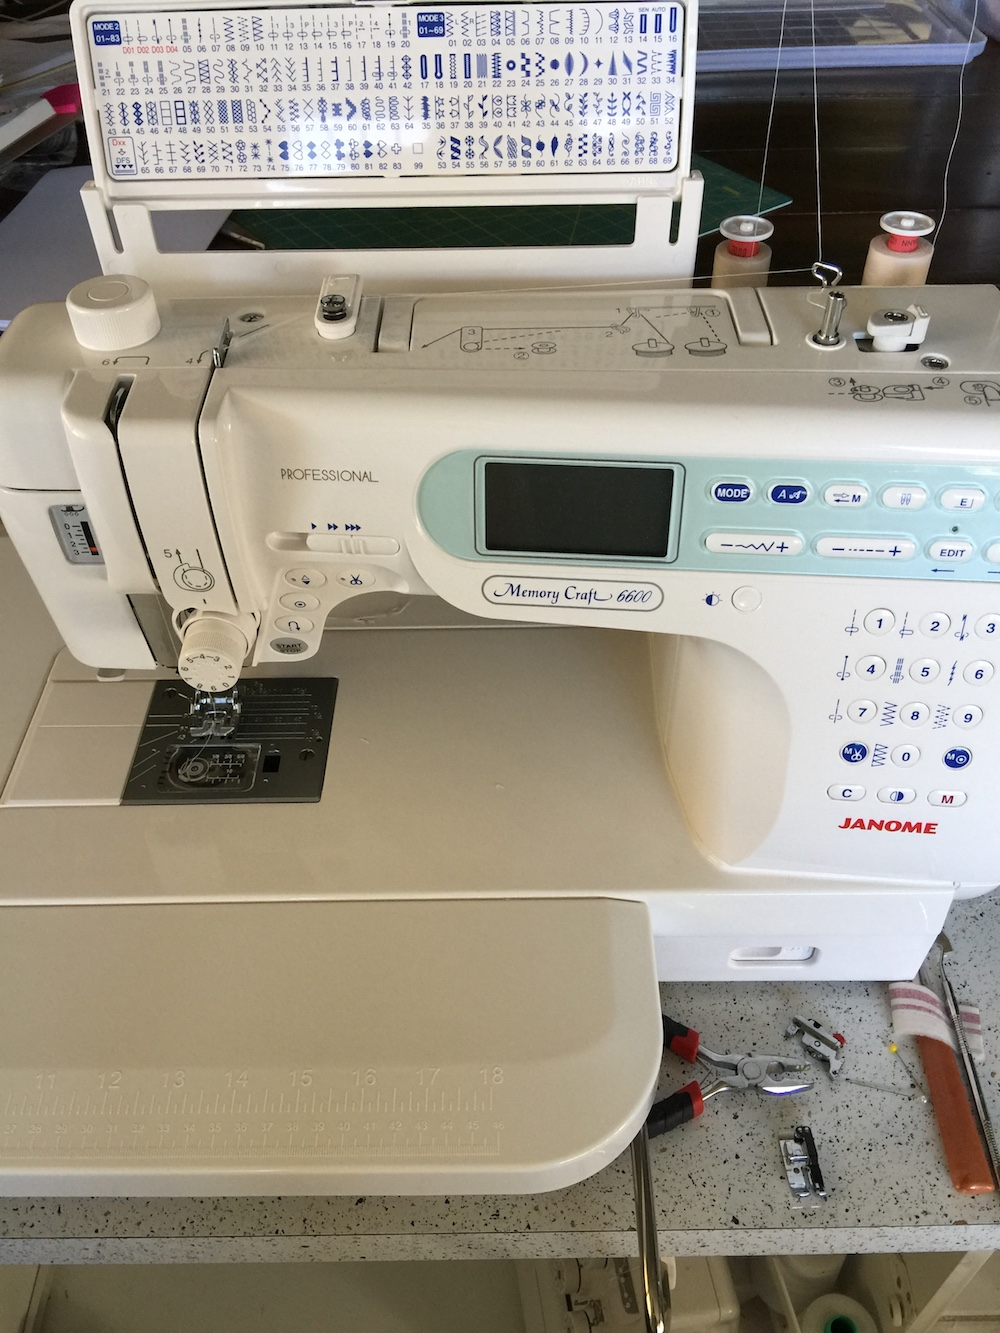 Janome 6600P – my new sewing machine